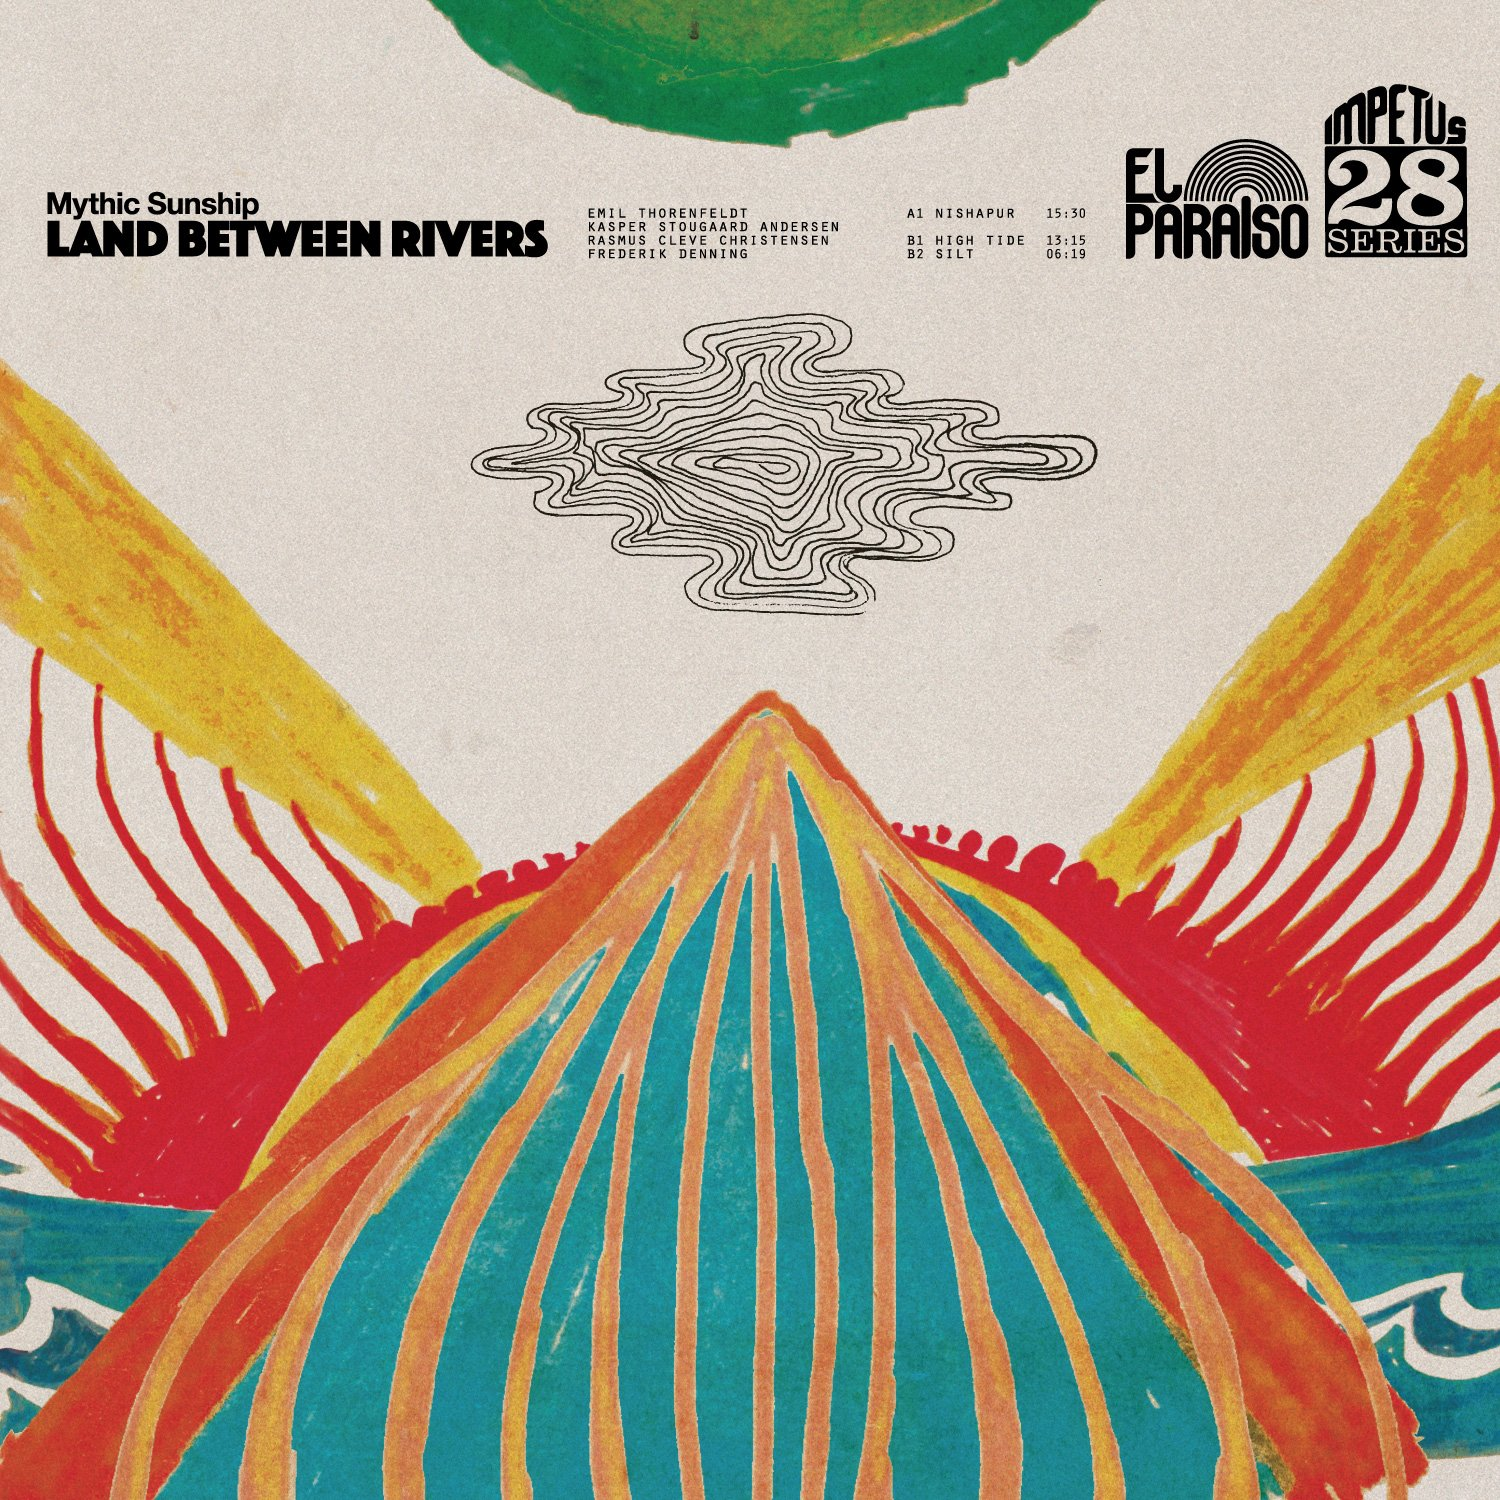 Mythic Sunship — Land between Rivers